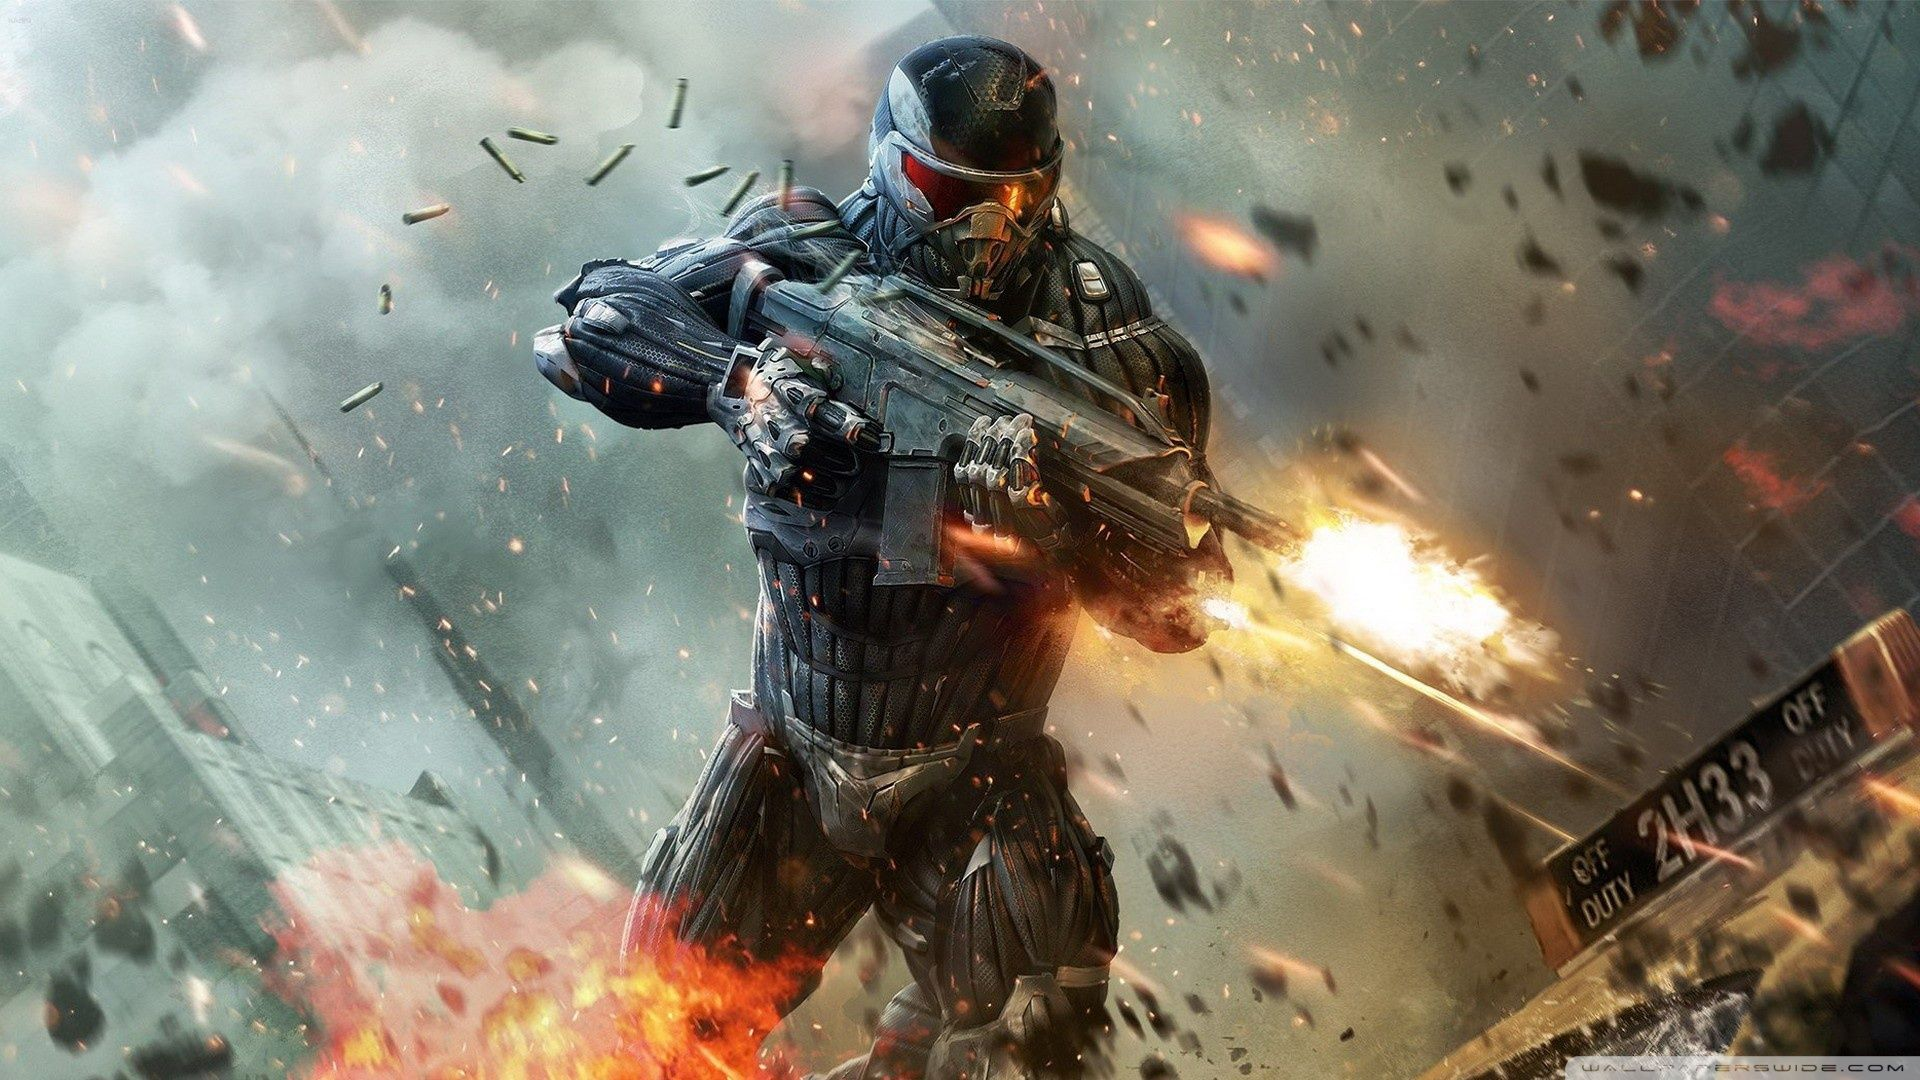 1920 X 1080 Gaming Wallpapers Top Free 1920 X 1080 Gaming Backgrounds Wallpaperaccess